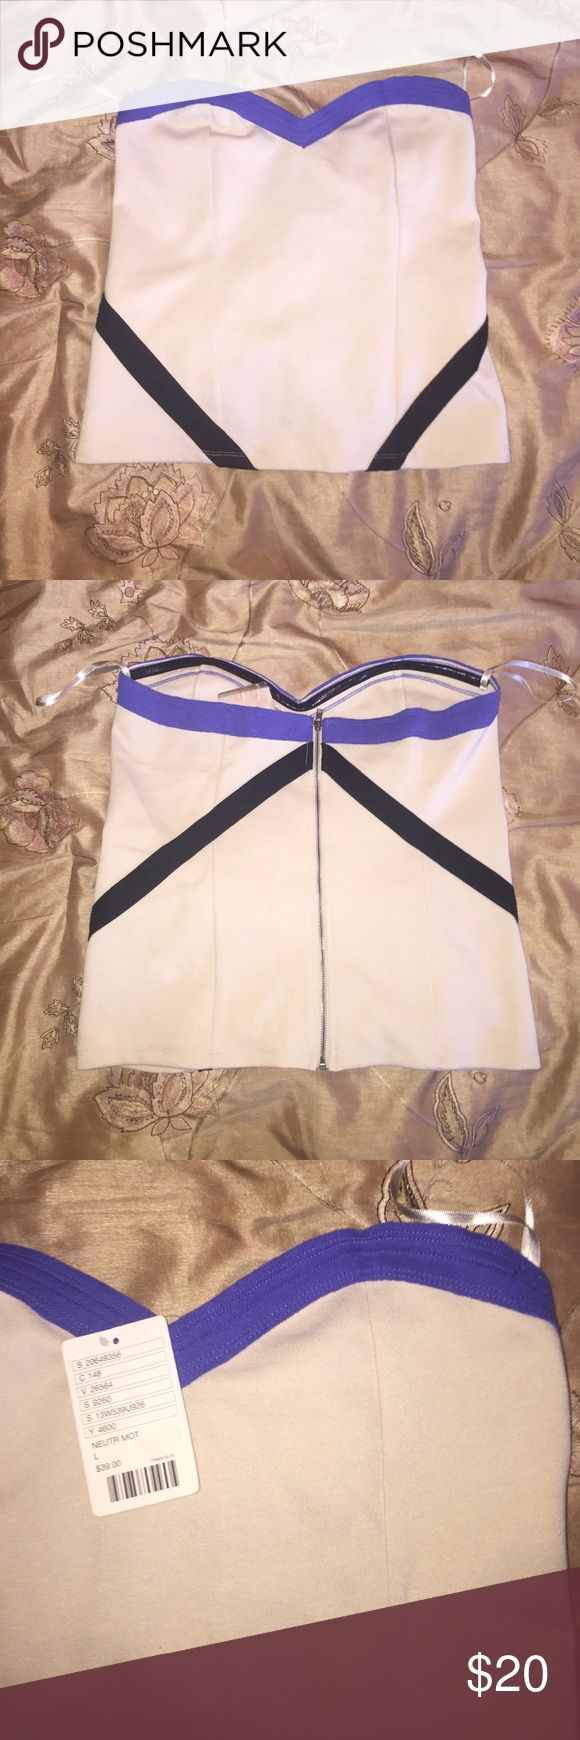 ❗️NWT❗️Strapless beige top w/purple & black detail ❗️NWT❗️Strapless beige top with purple trimming on sweetheart neckline, with black strip detail. Zipper on back and additional detail. Perfect for a fun night out or paired with a blazer to dress up! Offers welcome 😊 silence + noise Tops